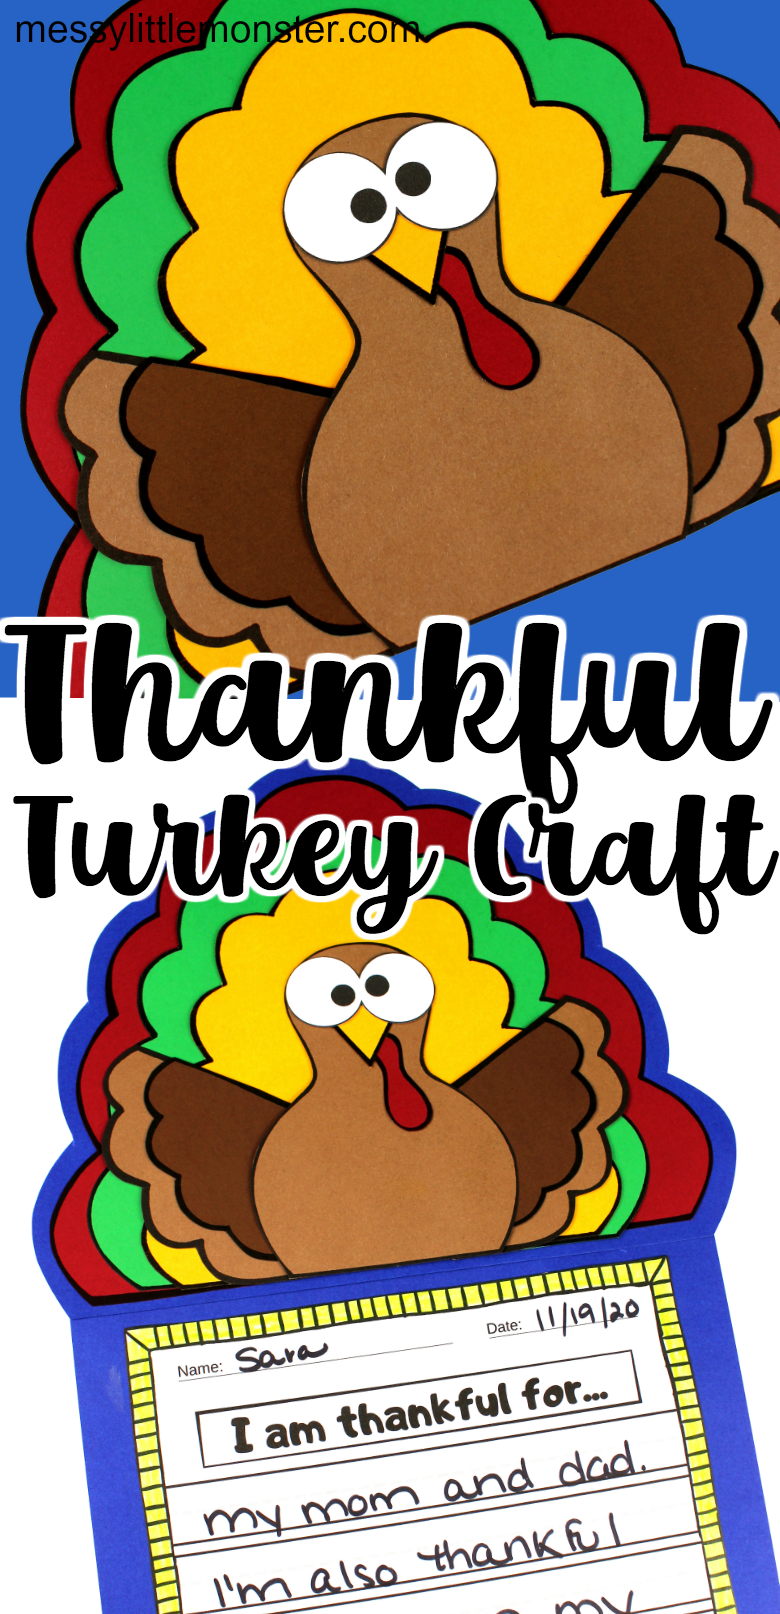 Thankful turkey craft for kids with Thanksgiving I am thankful for printable.